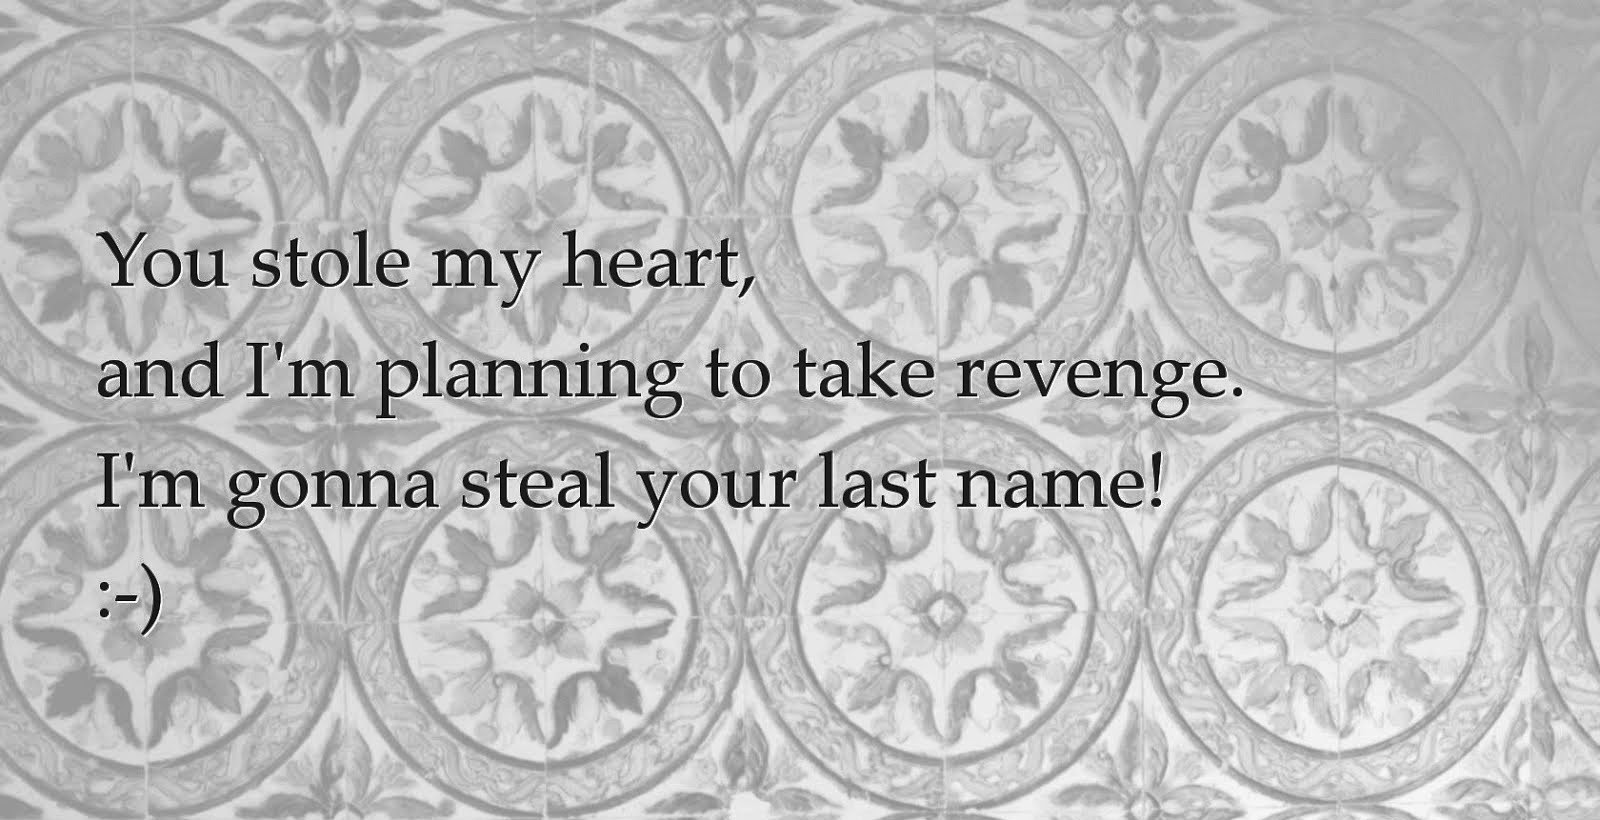 You stole my heart,and I'm planning to take revenge. I'm gonna steal your last name